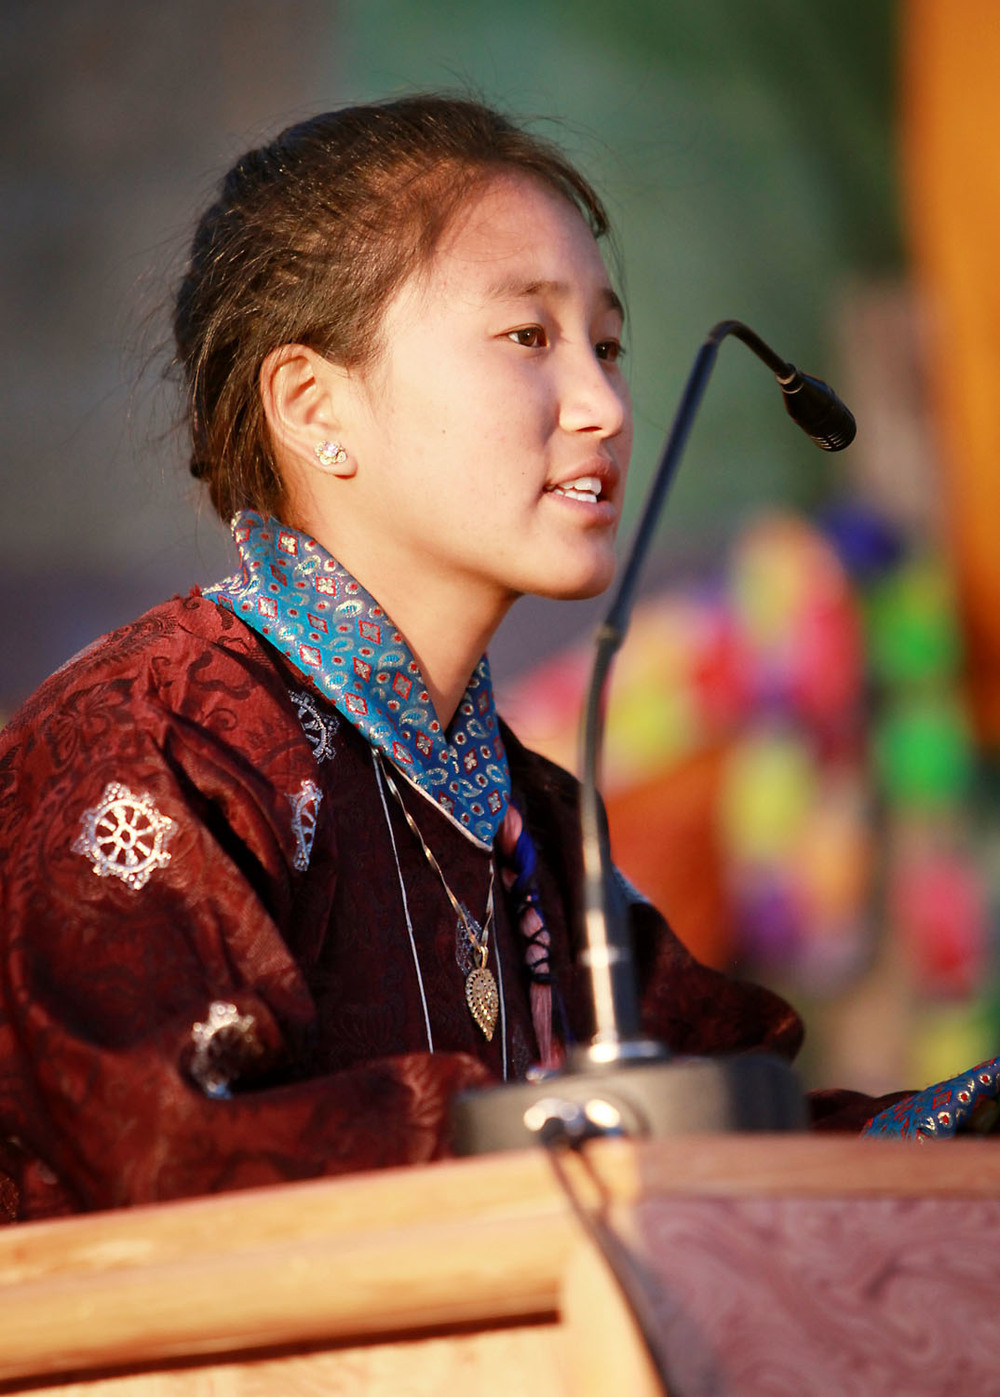 Pupil of Druk White Lotus school, Shey, Ladakh